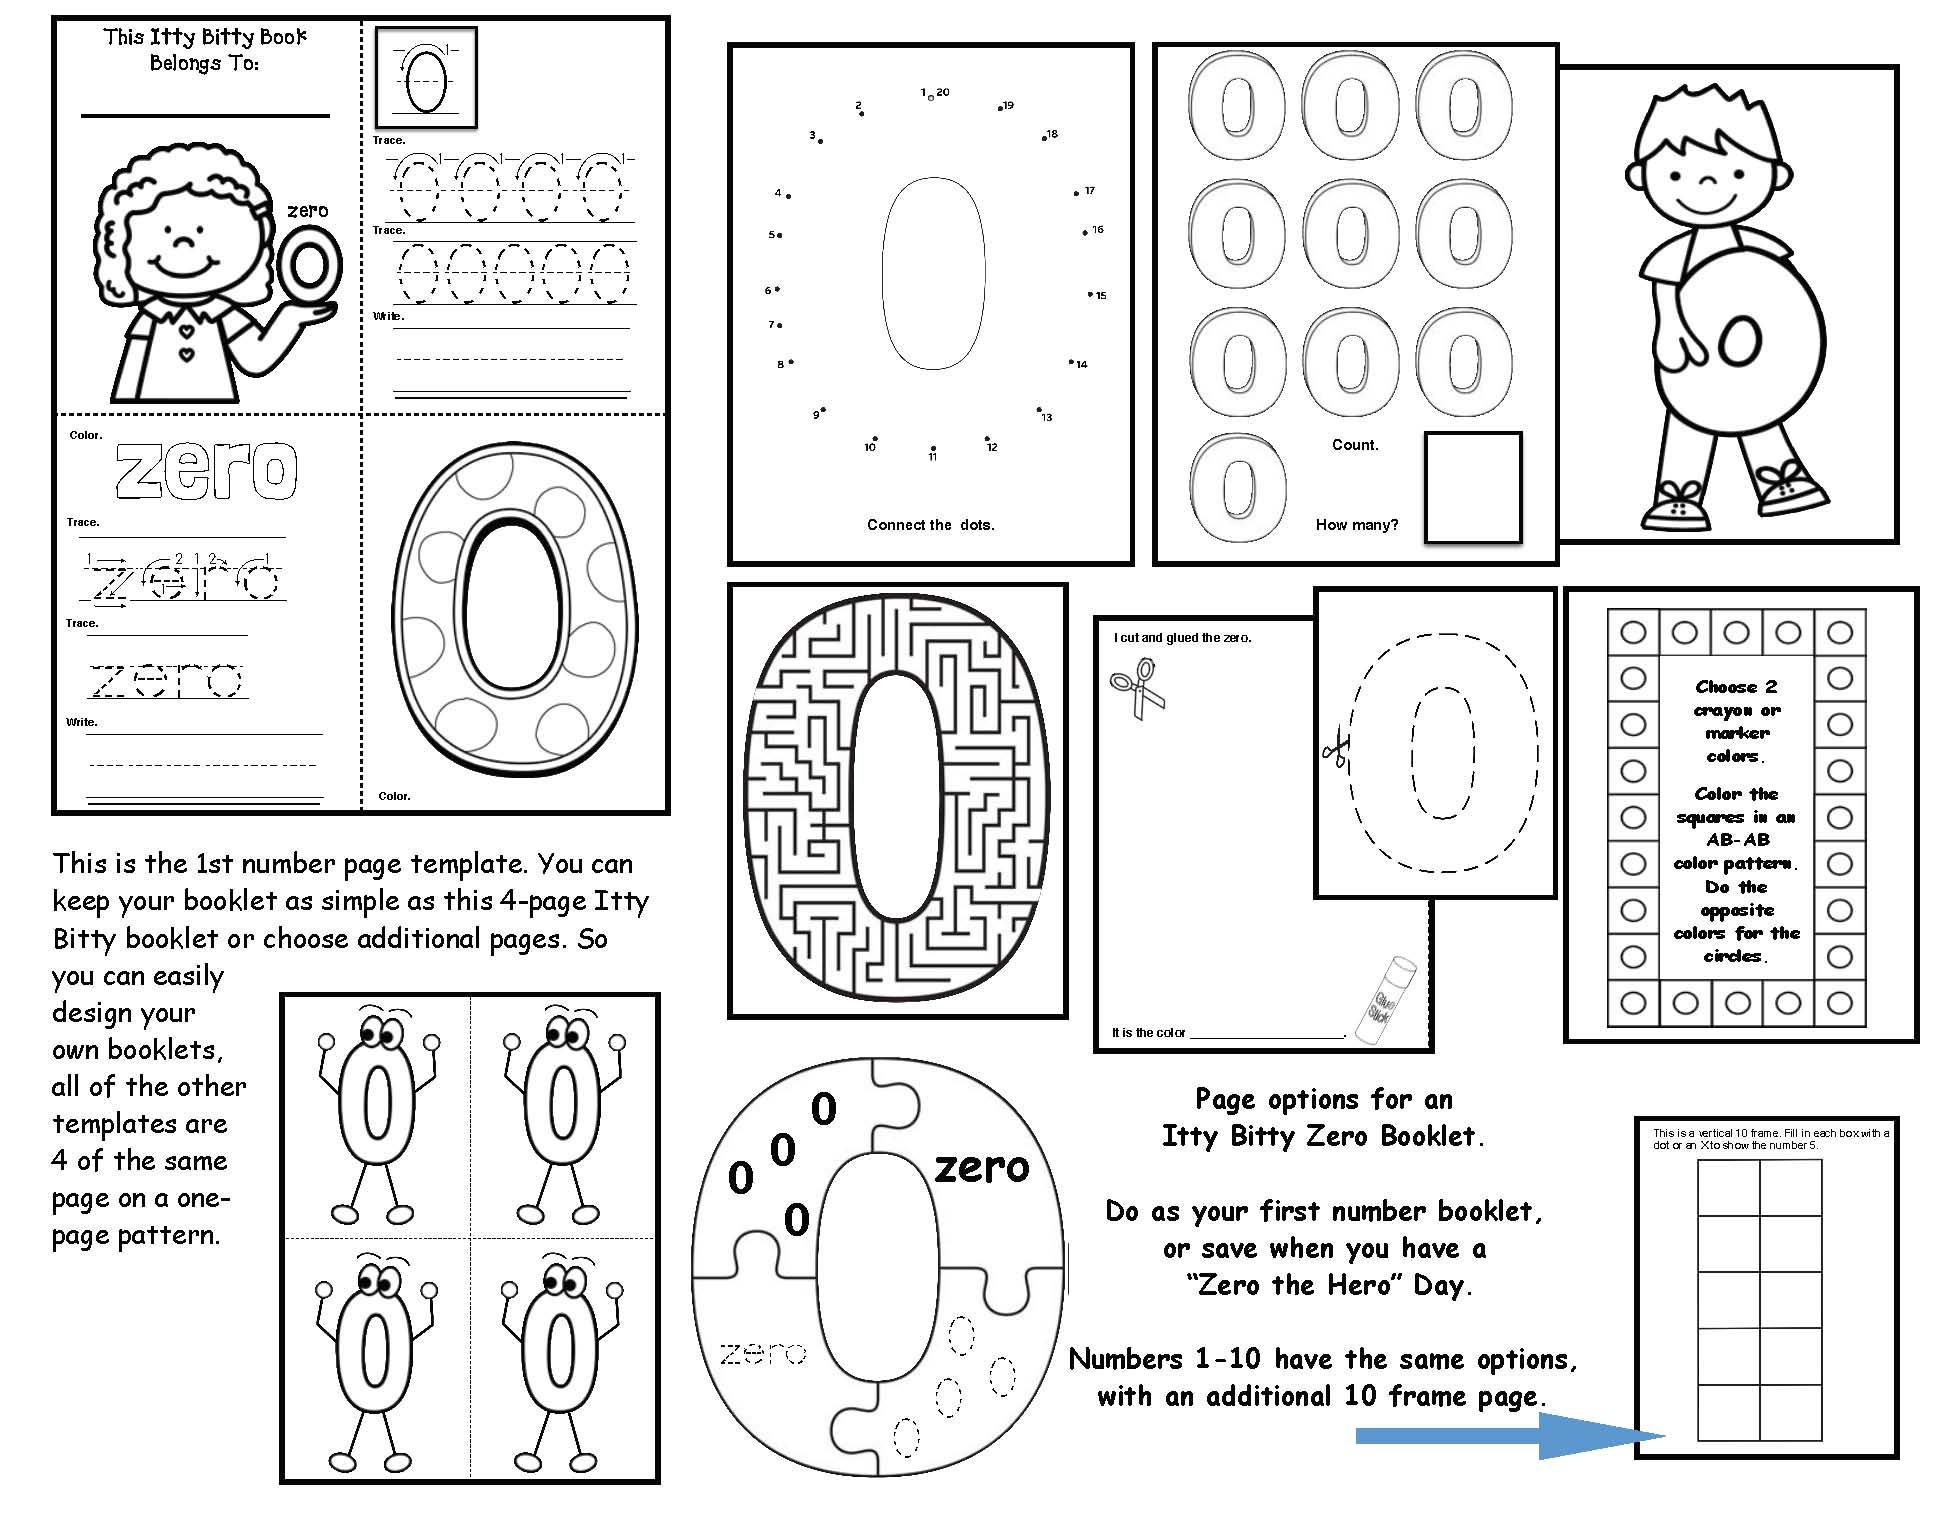 number booklet, number posters, coloring pages for numbers, number recognition activities, counting activities, sequencing numbers, math posters, dot numbers, math centers, number crafts, math bulletin boards